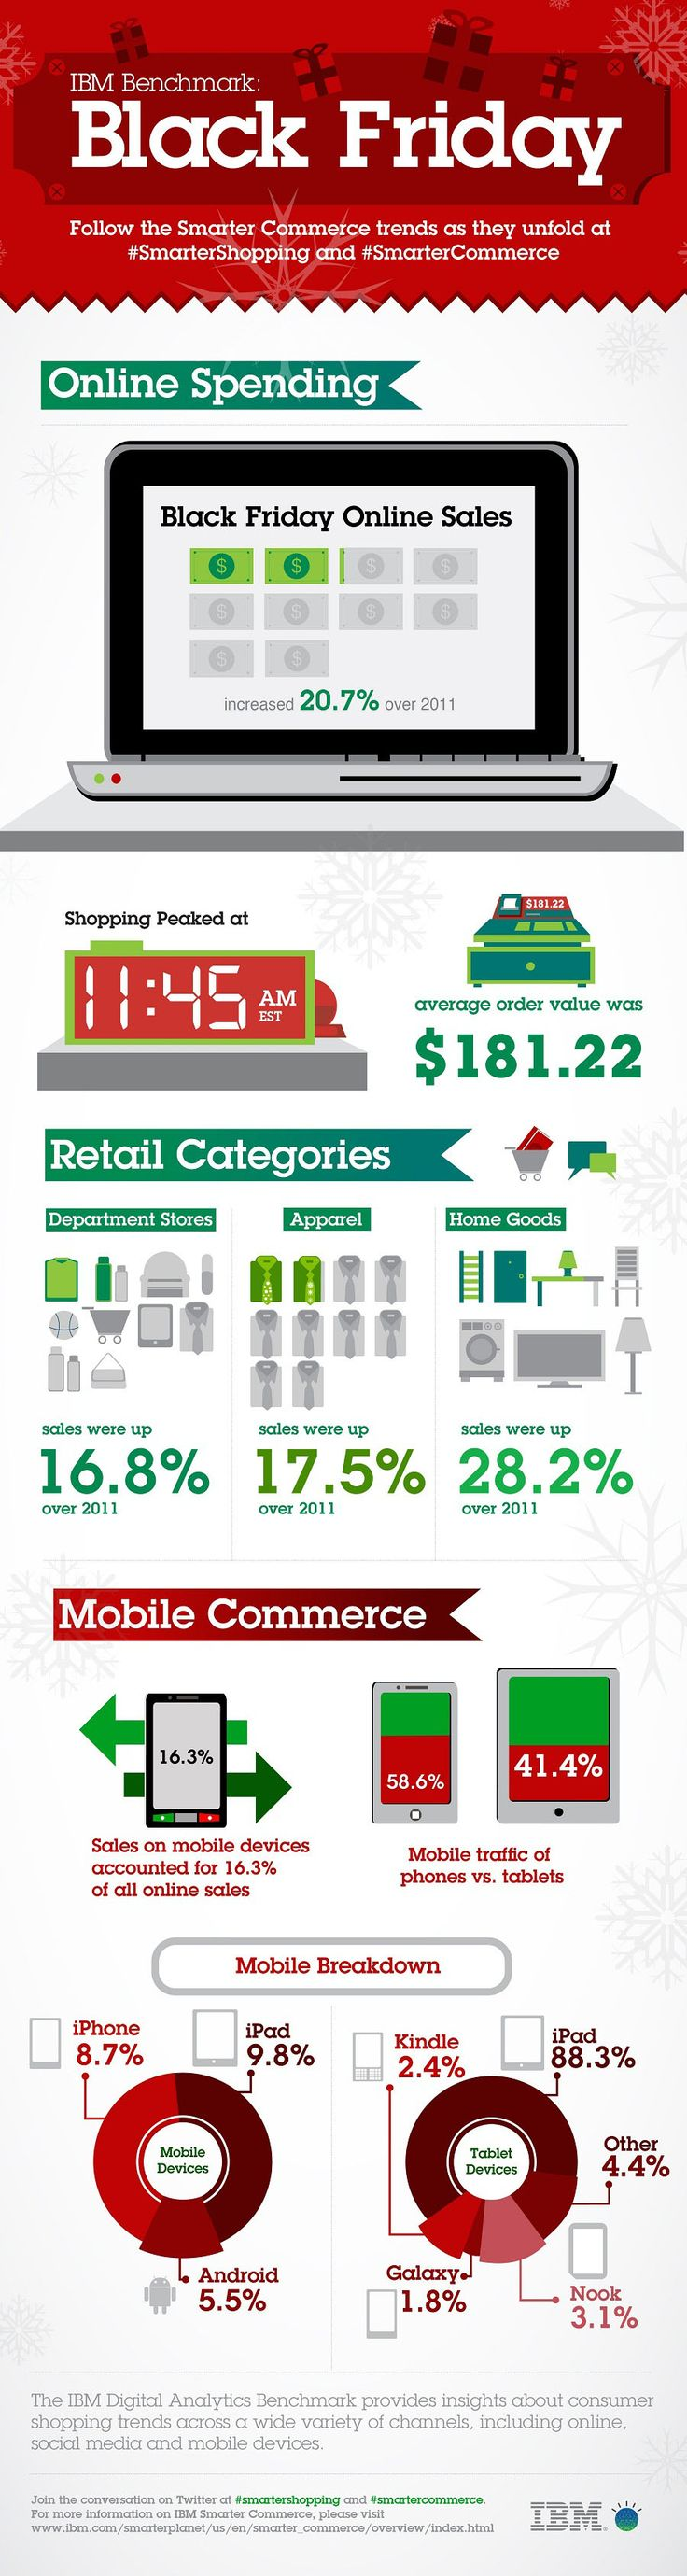 Mobile Shopping Dominated by iOS in the USBlackfriday, Ibm, Friday 2012, Cyber Mondays, Online Shops, Friday Online, Infographic, Black Friday, Mobile